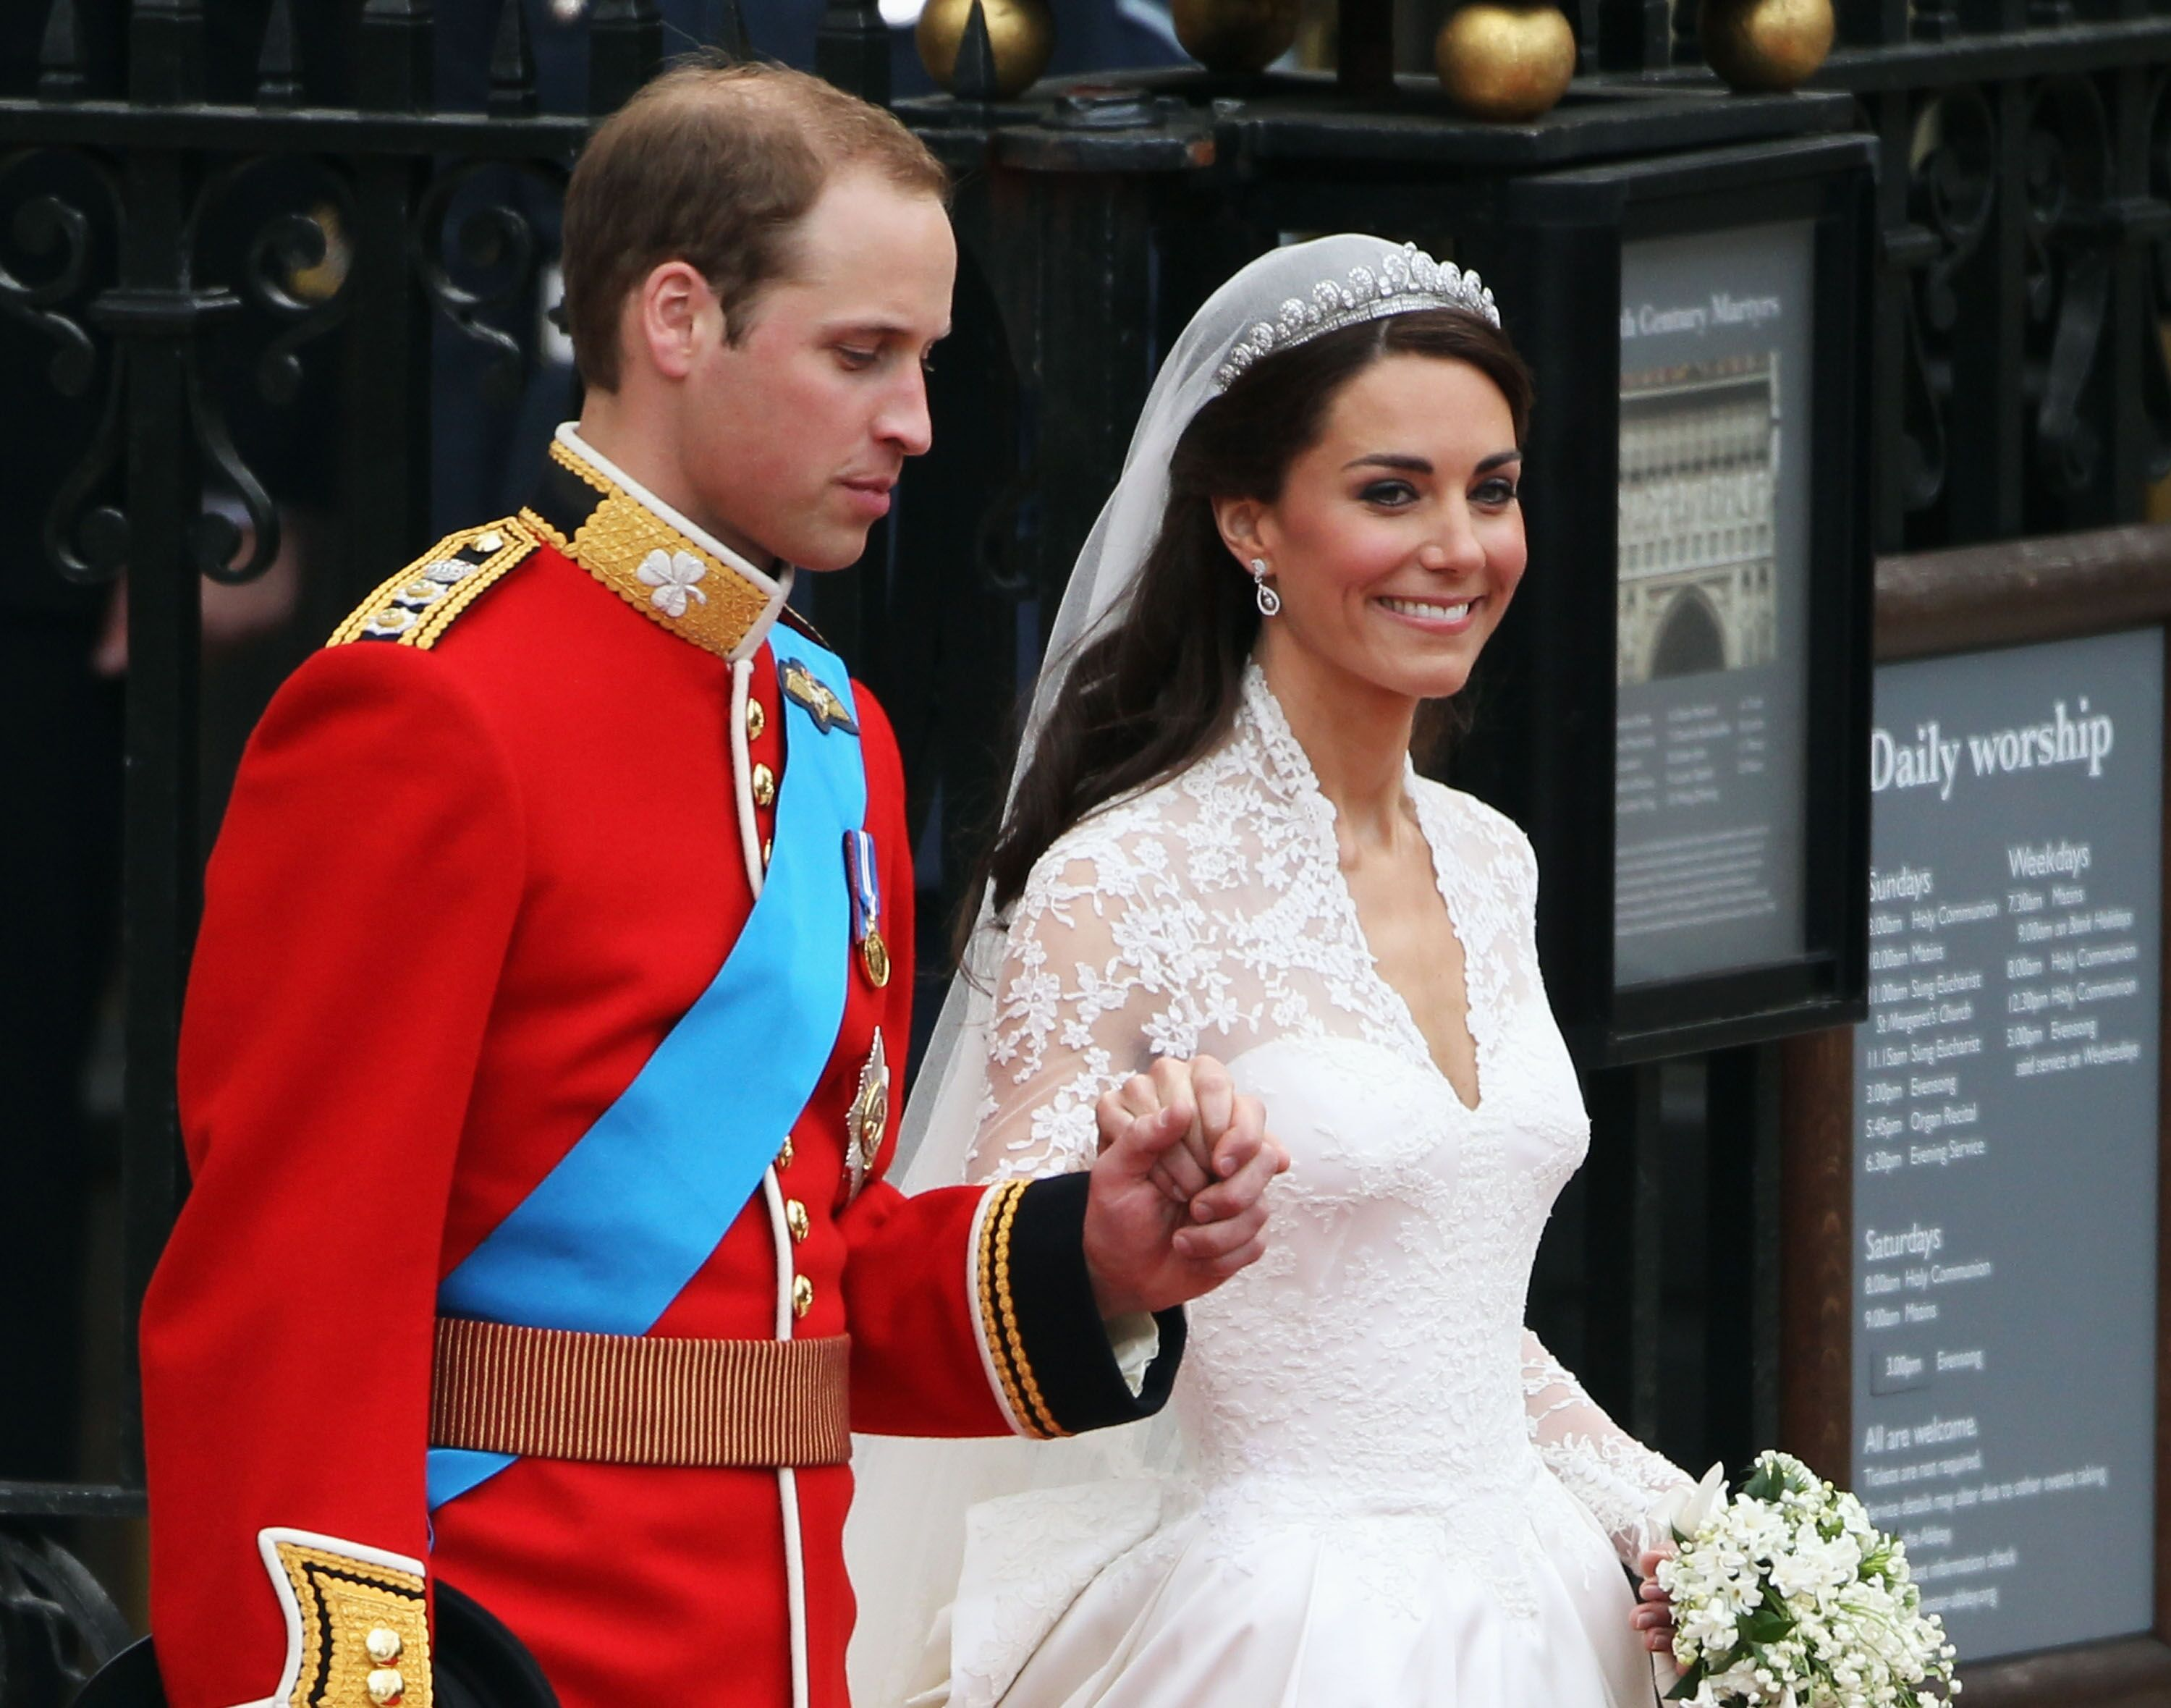 Prince William and Kate Middleton on their wedding day. | Source: Getty Images